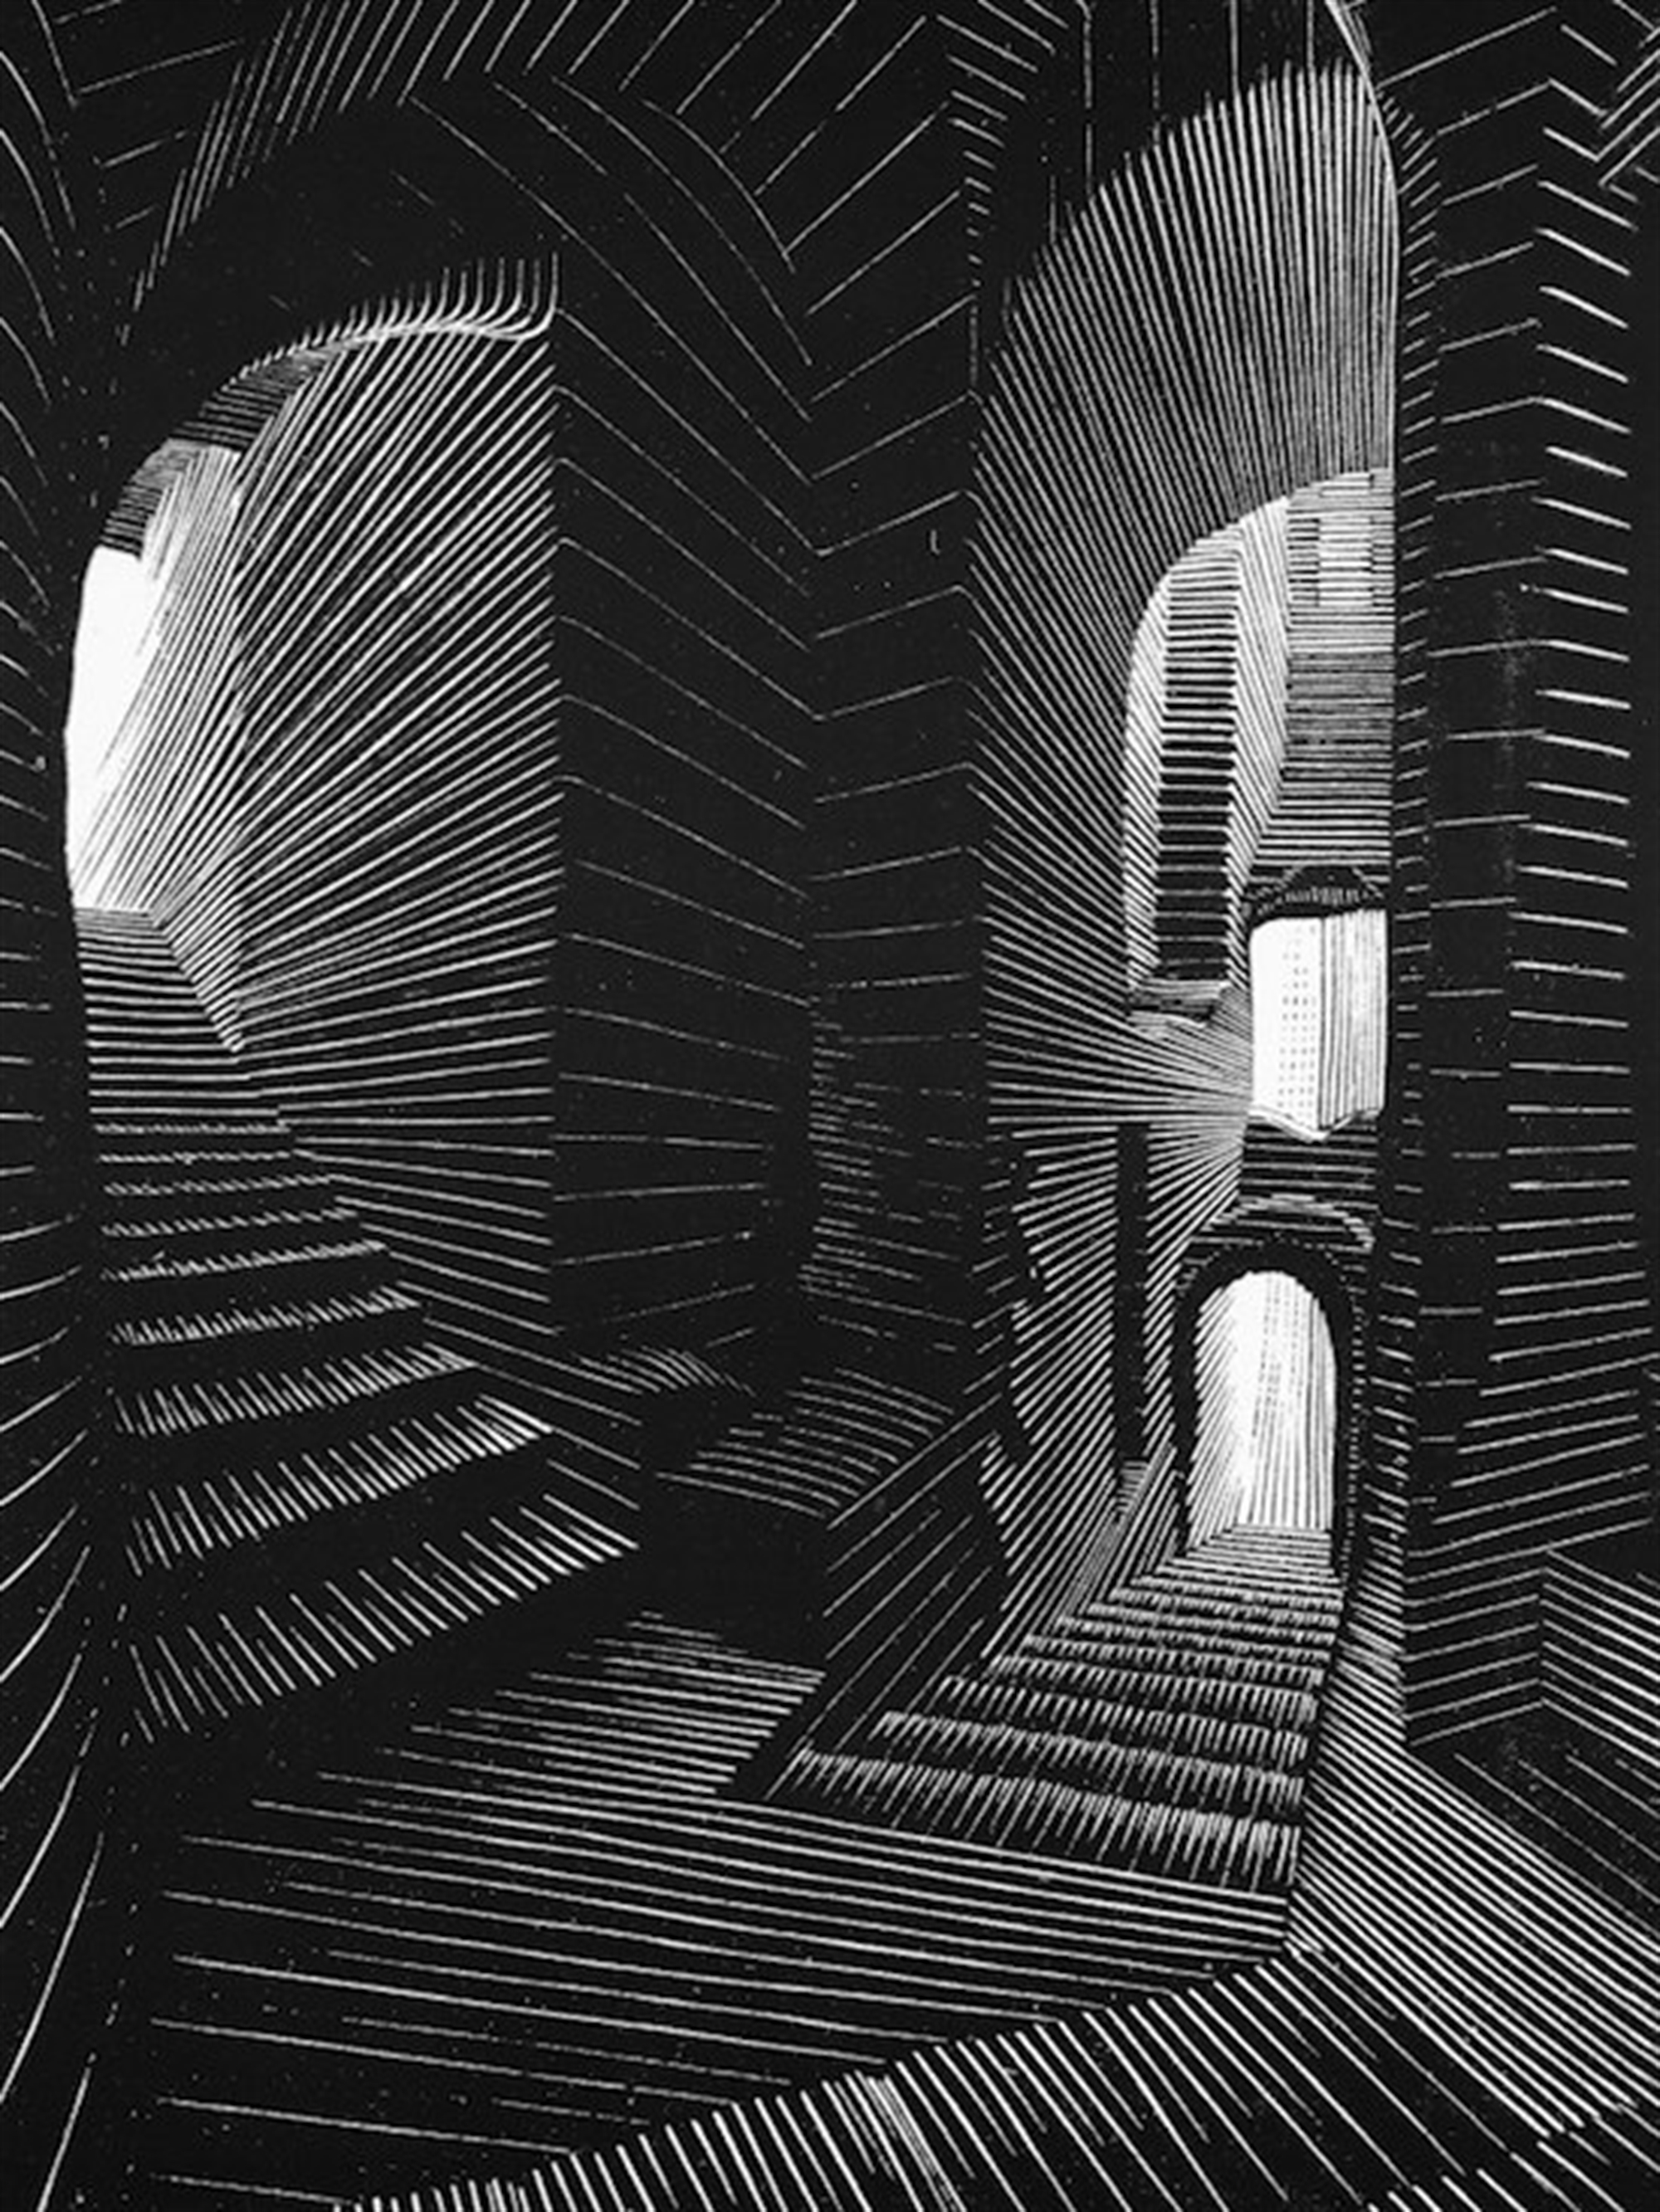 Covered Alley in Atrani, Amalfi by M.C. Escher